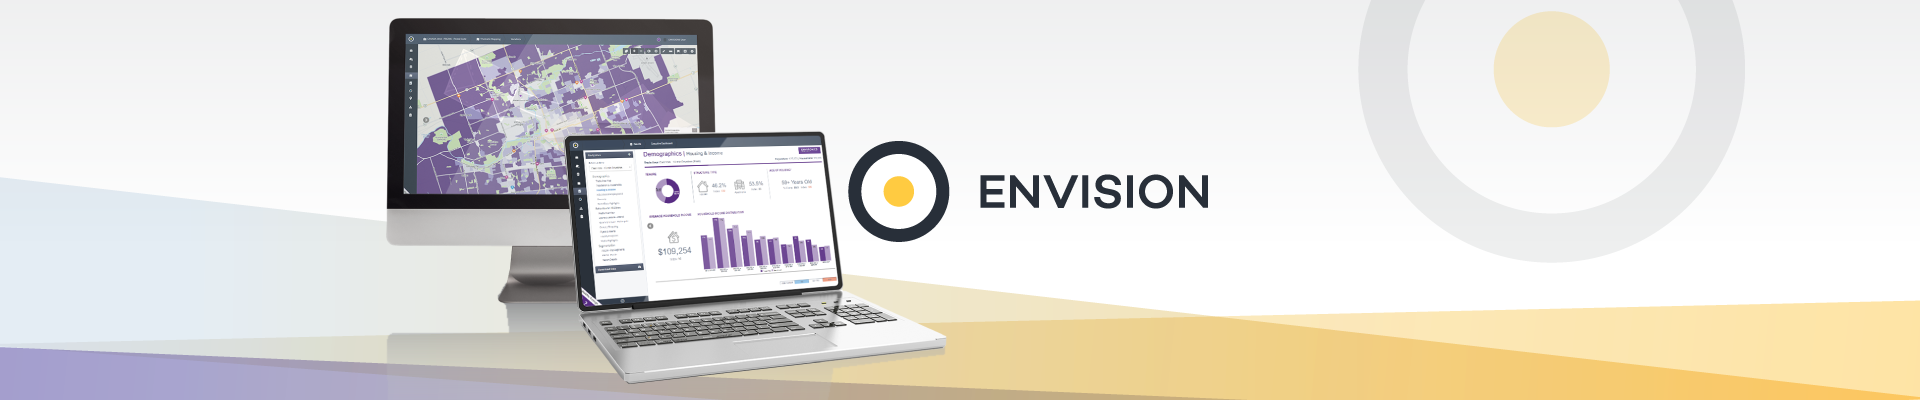 ENVISION-page-header-1920x400